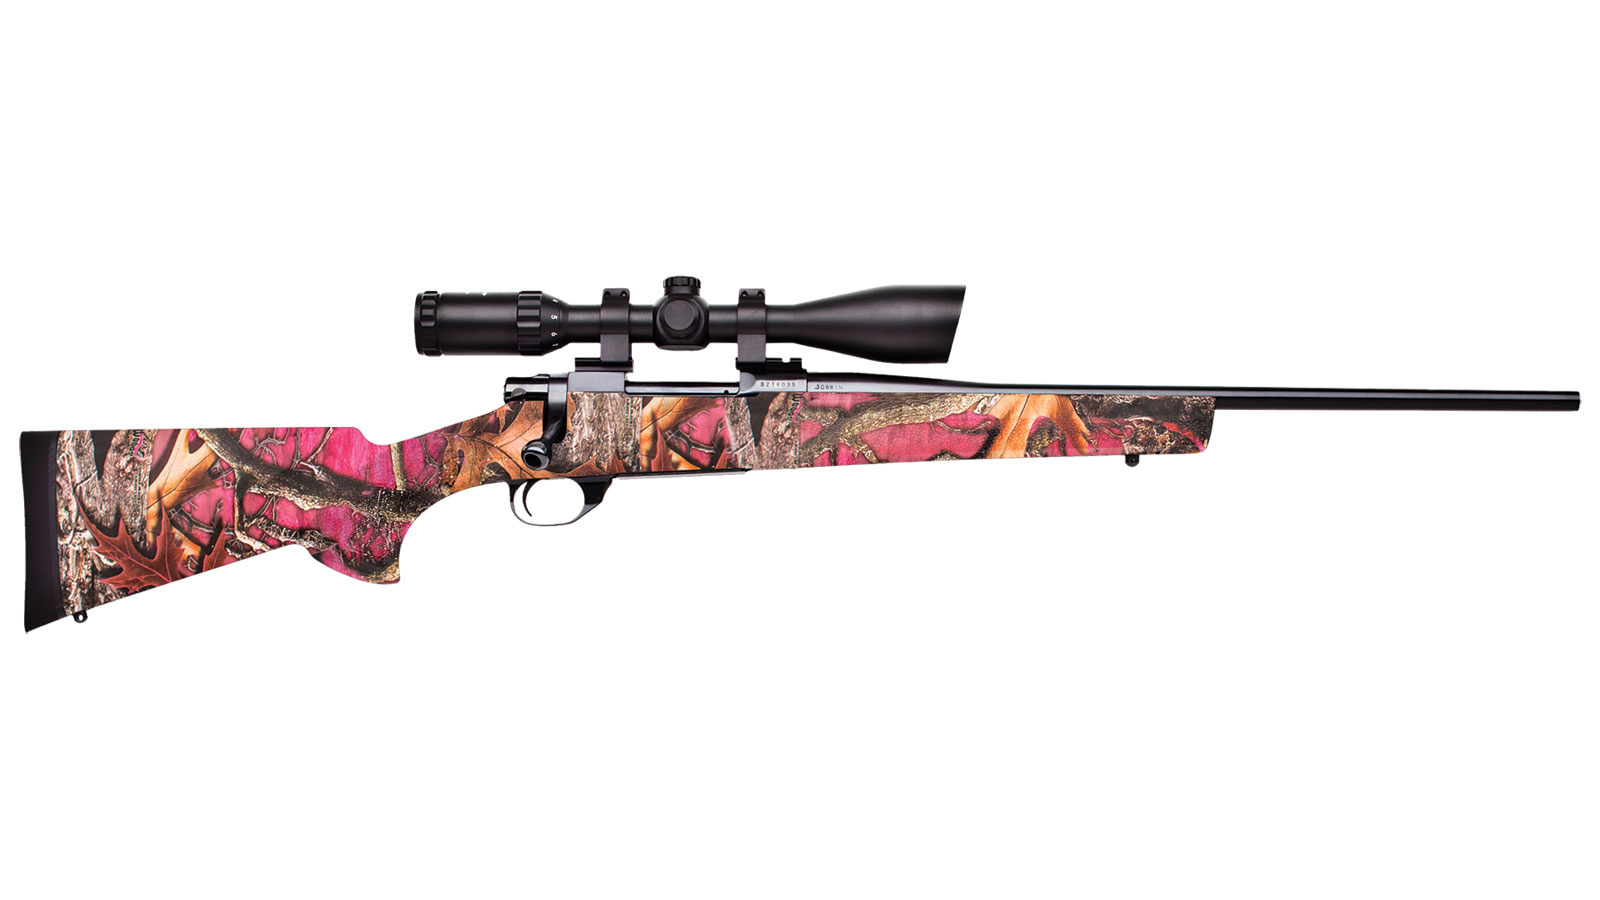 Legacy Sports Howa Hogue Youth Nighteater Bolt Action Rifle with Scope Package Foxy Woods Camo .223 Rem 20 inch 4 rd with Nikko Stirling Nighteater 3-9X42 scope